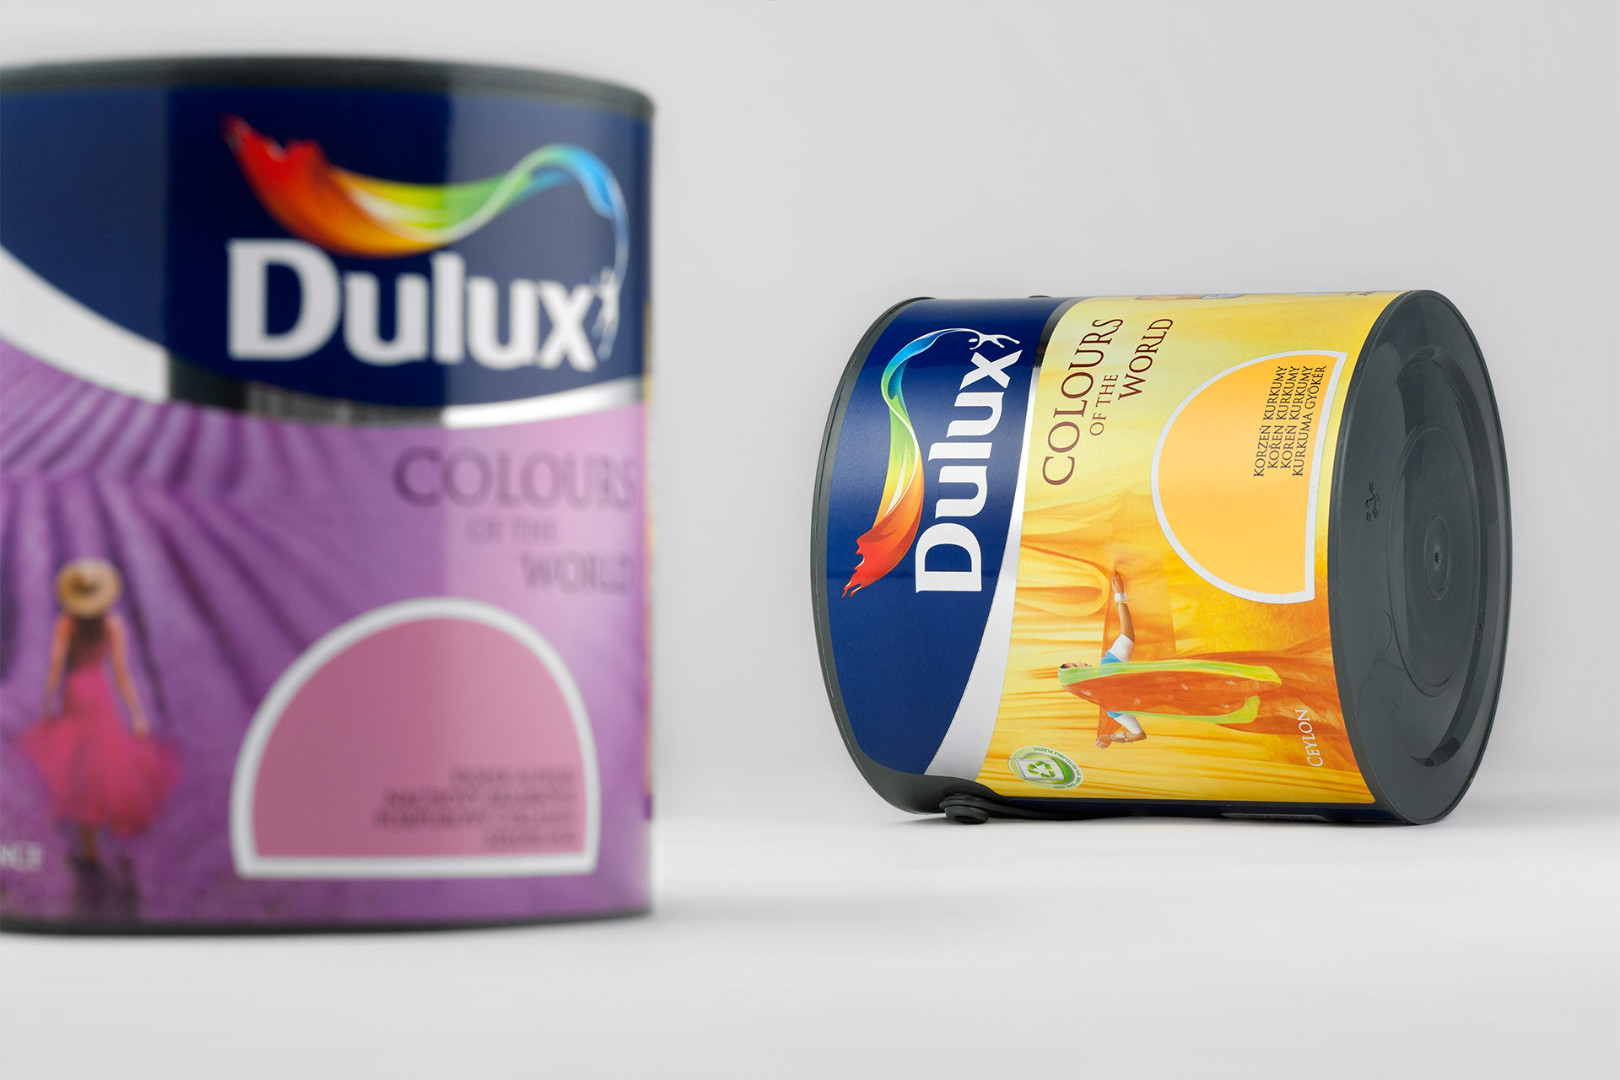 Picture Dulux